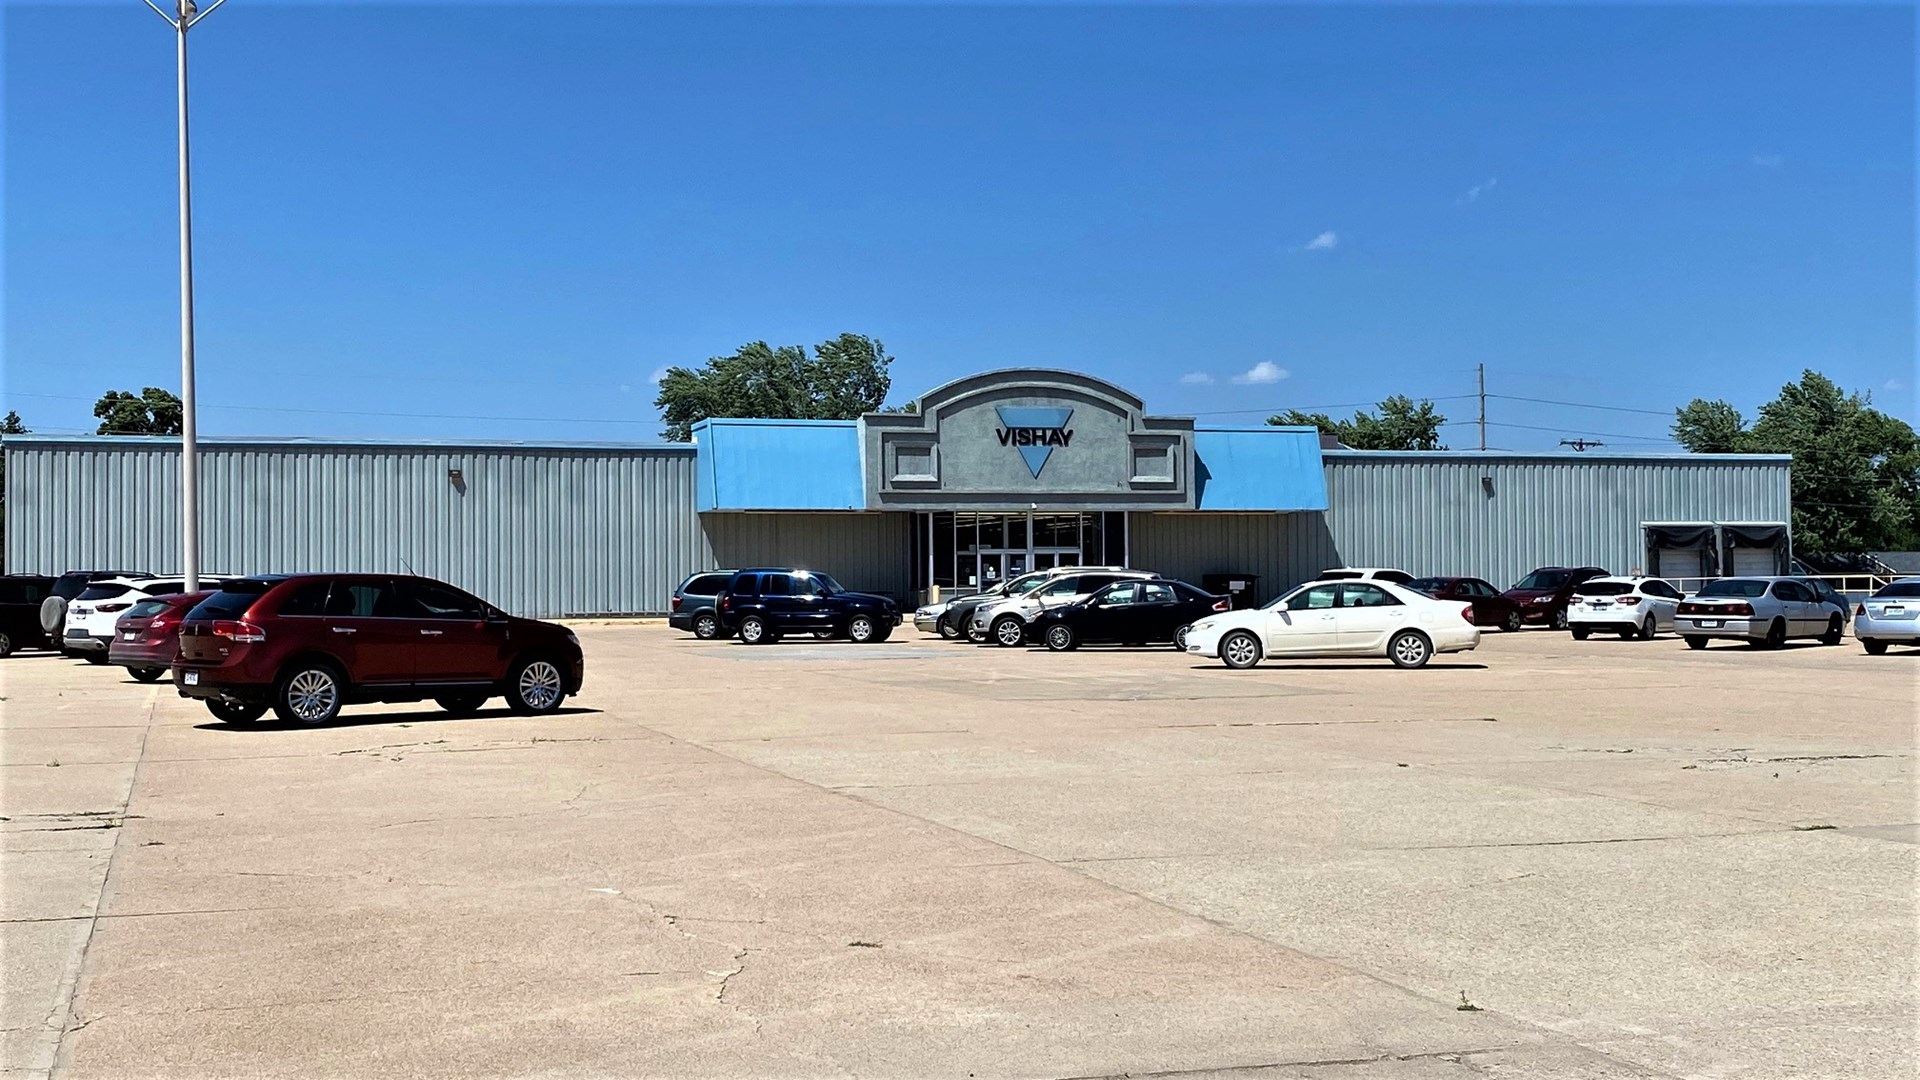 COMMERCIAL INVESTMENT BUILDING IN COLUMBUS NEBRASKA